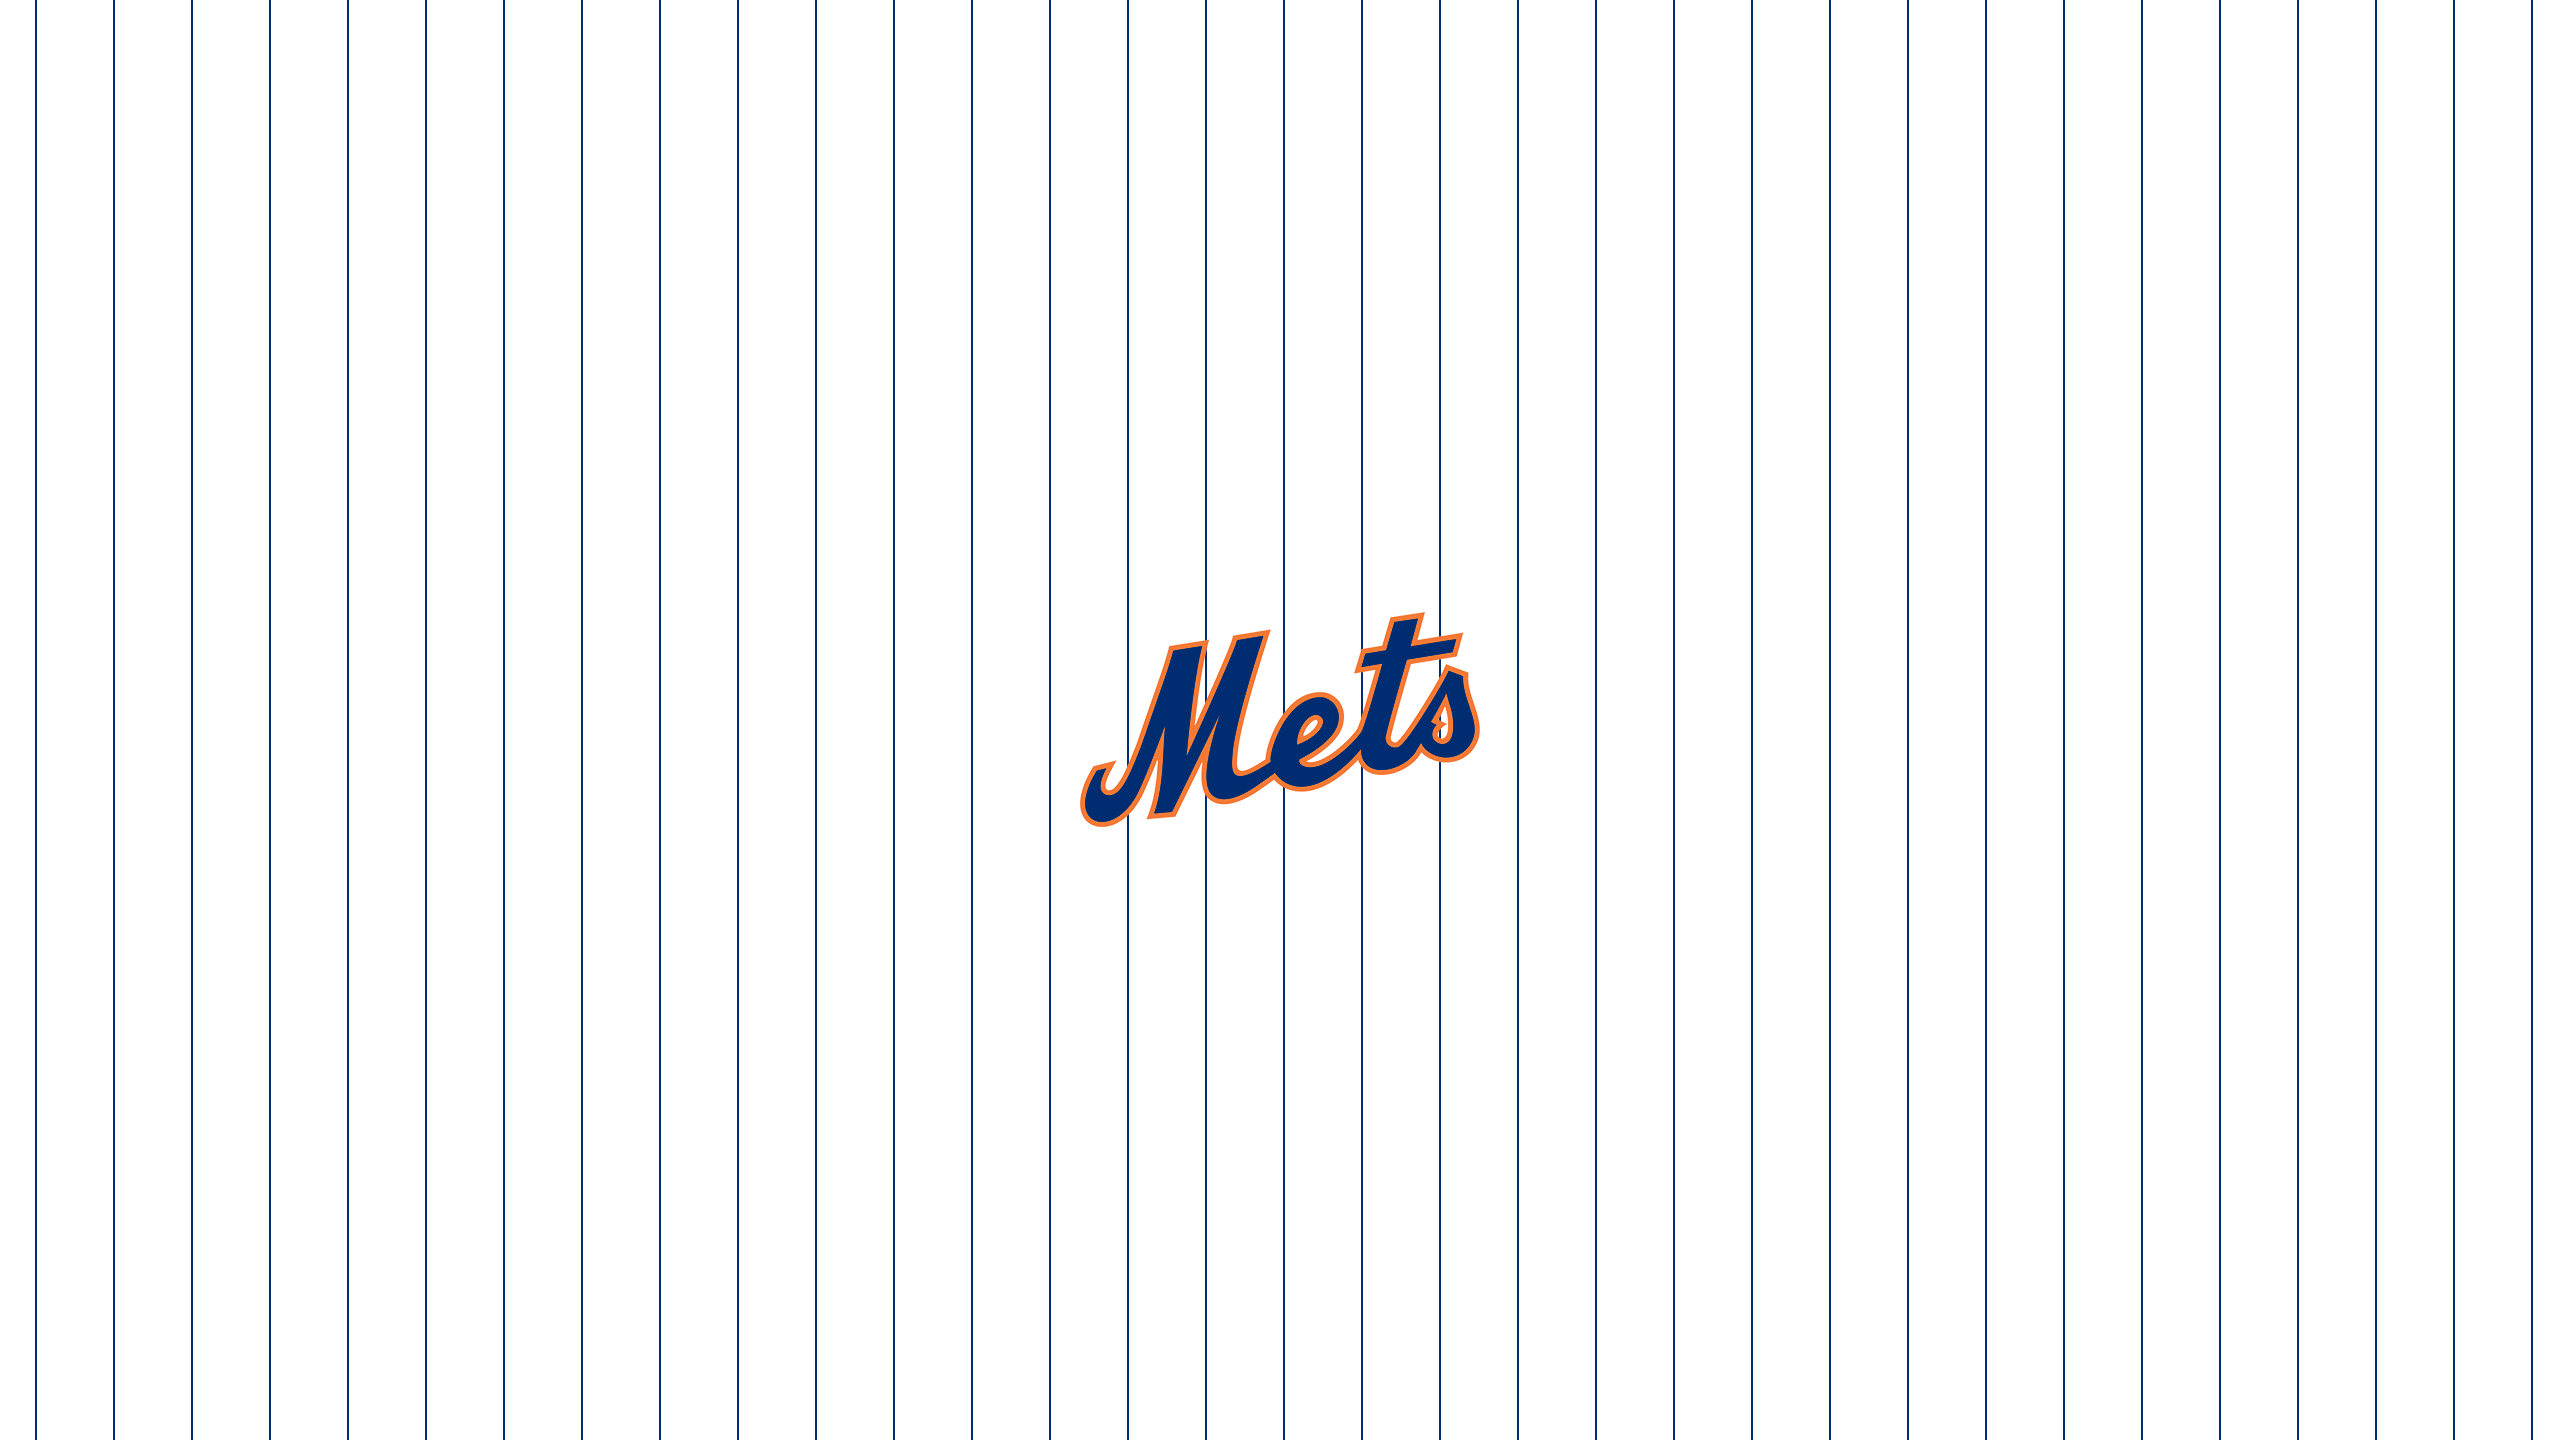 New York Mets (Home)